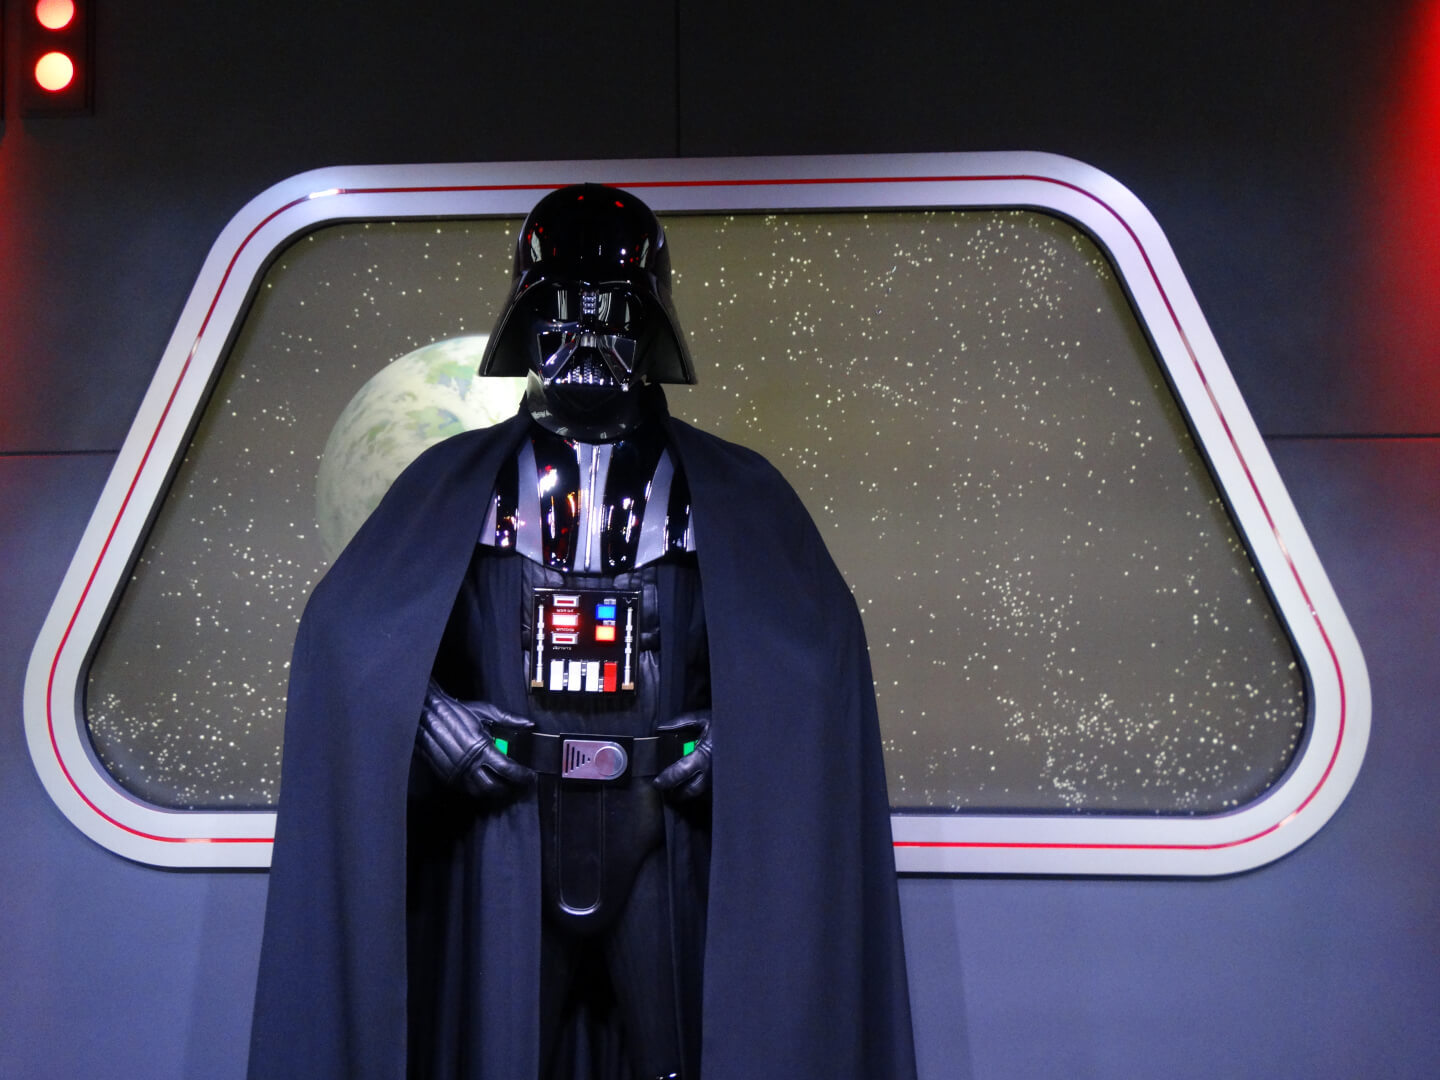 Exclusive star wars imperial meet n greet locations at disney exclusive star wars imperial meet n greet locations at disney parks announced for chase disney visa cardmembers inside the magic m4hsunfo Choice Image